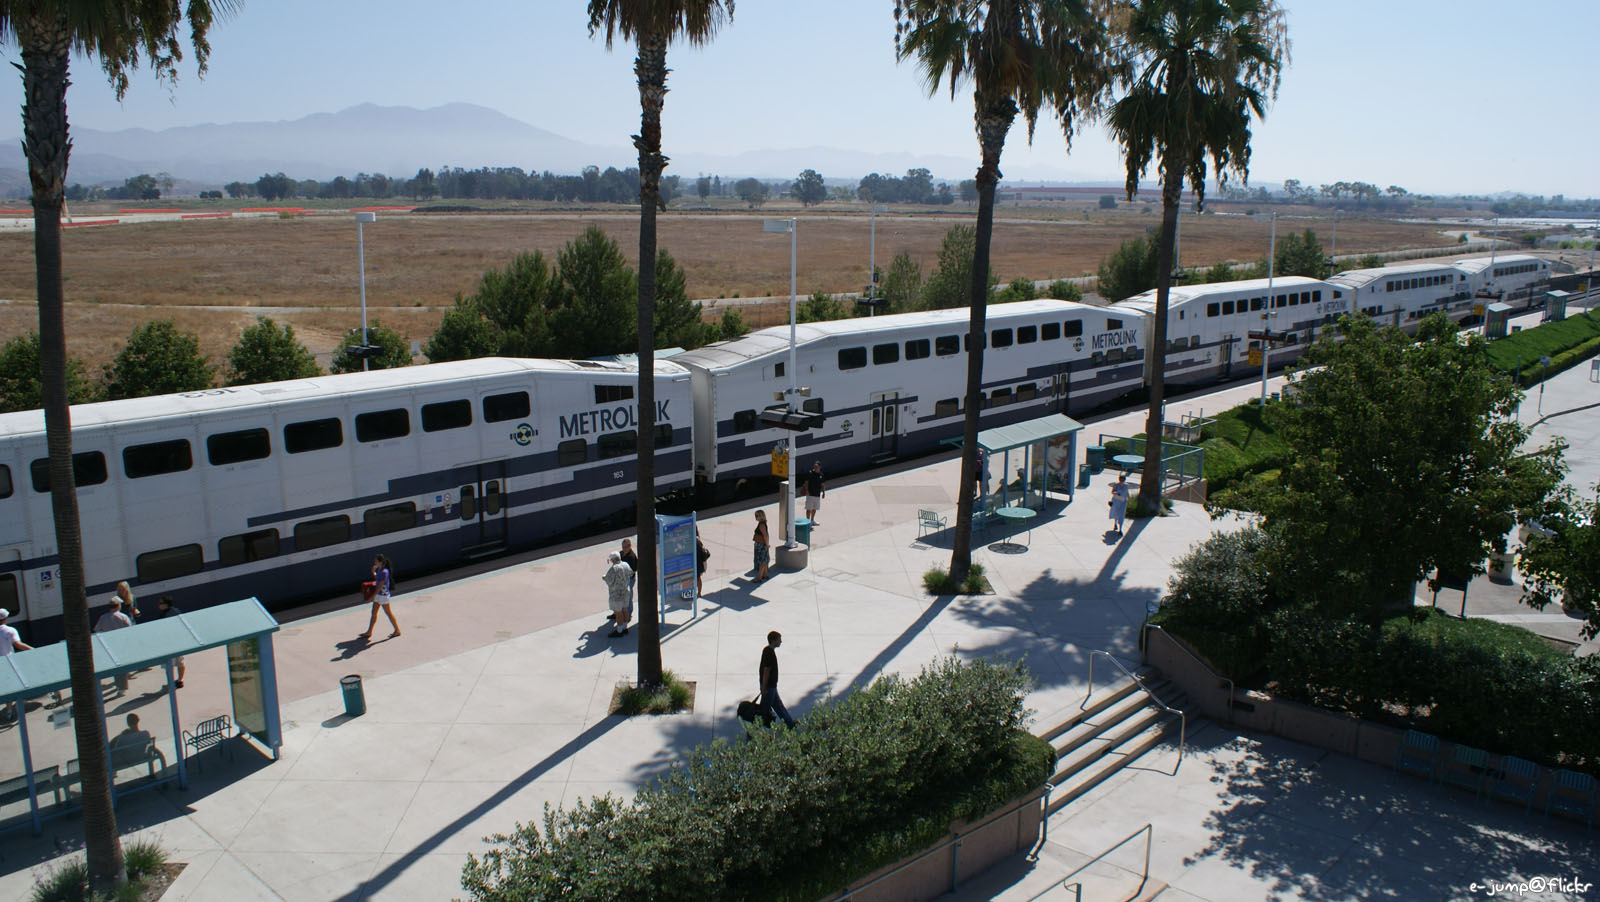 Metrolink heading Oceanside